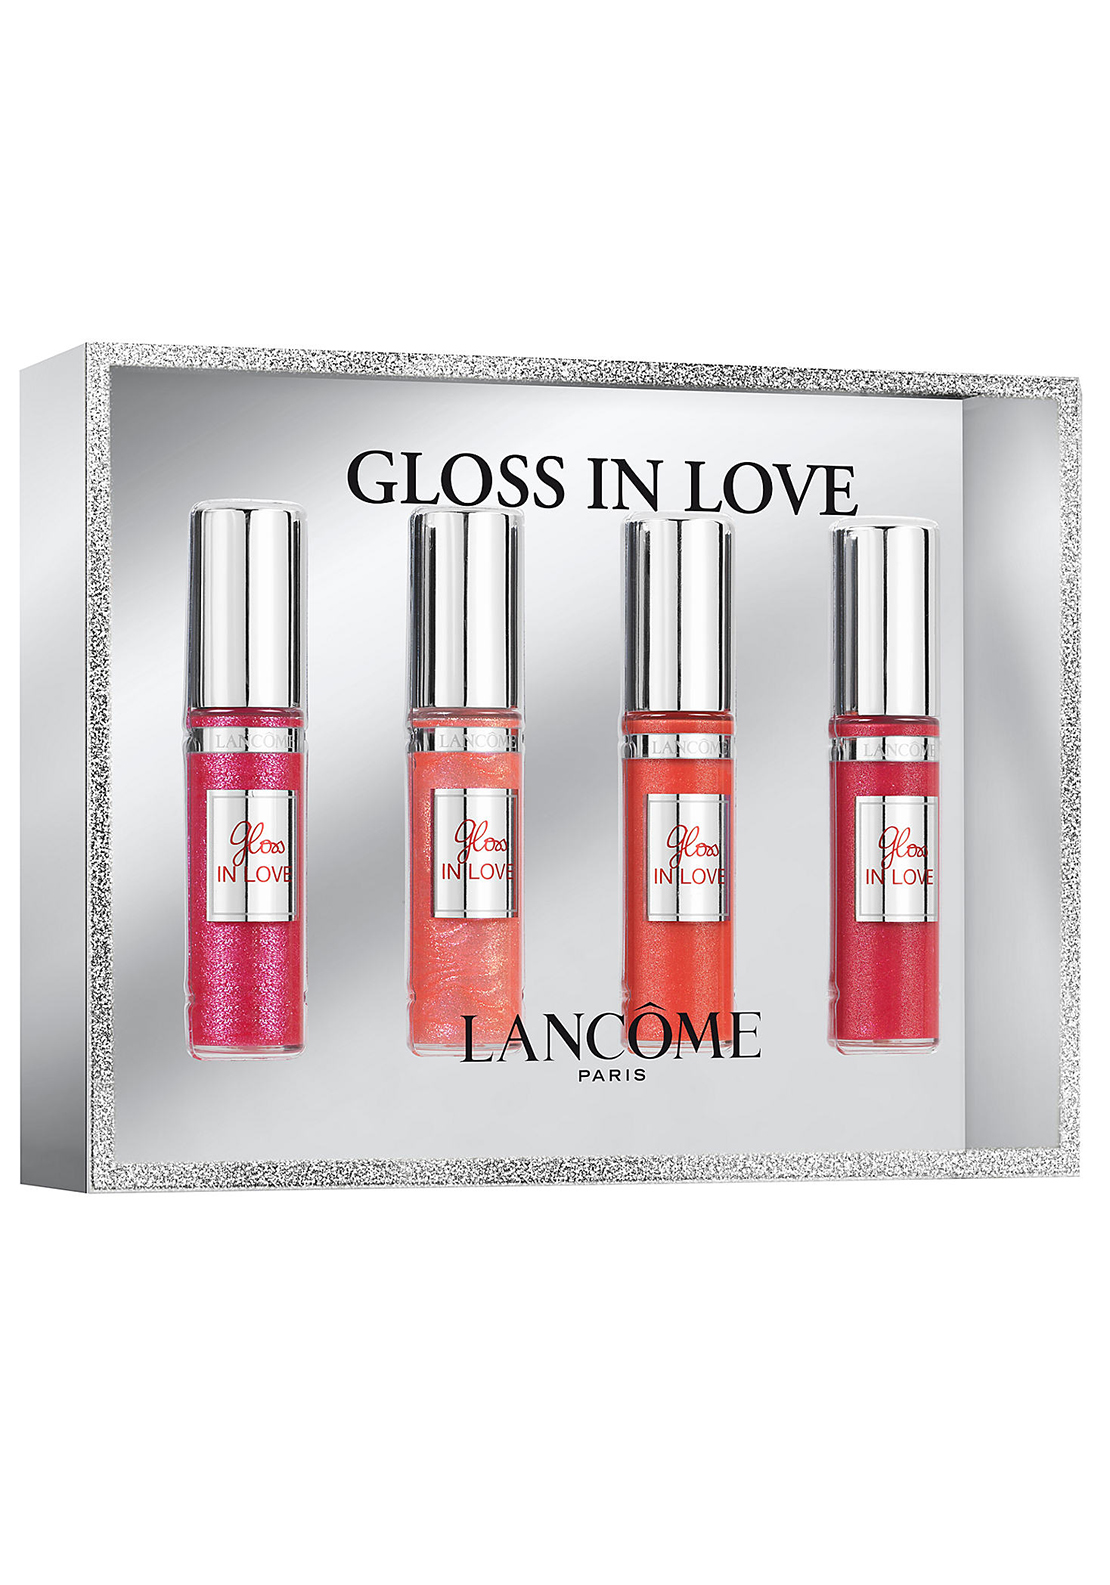 Lancome Gloss in Love Lipglaze Gift Set, 4pce by Lancome